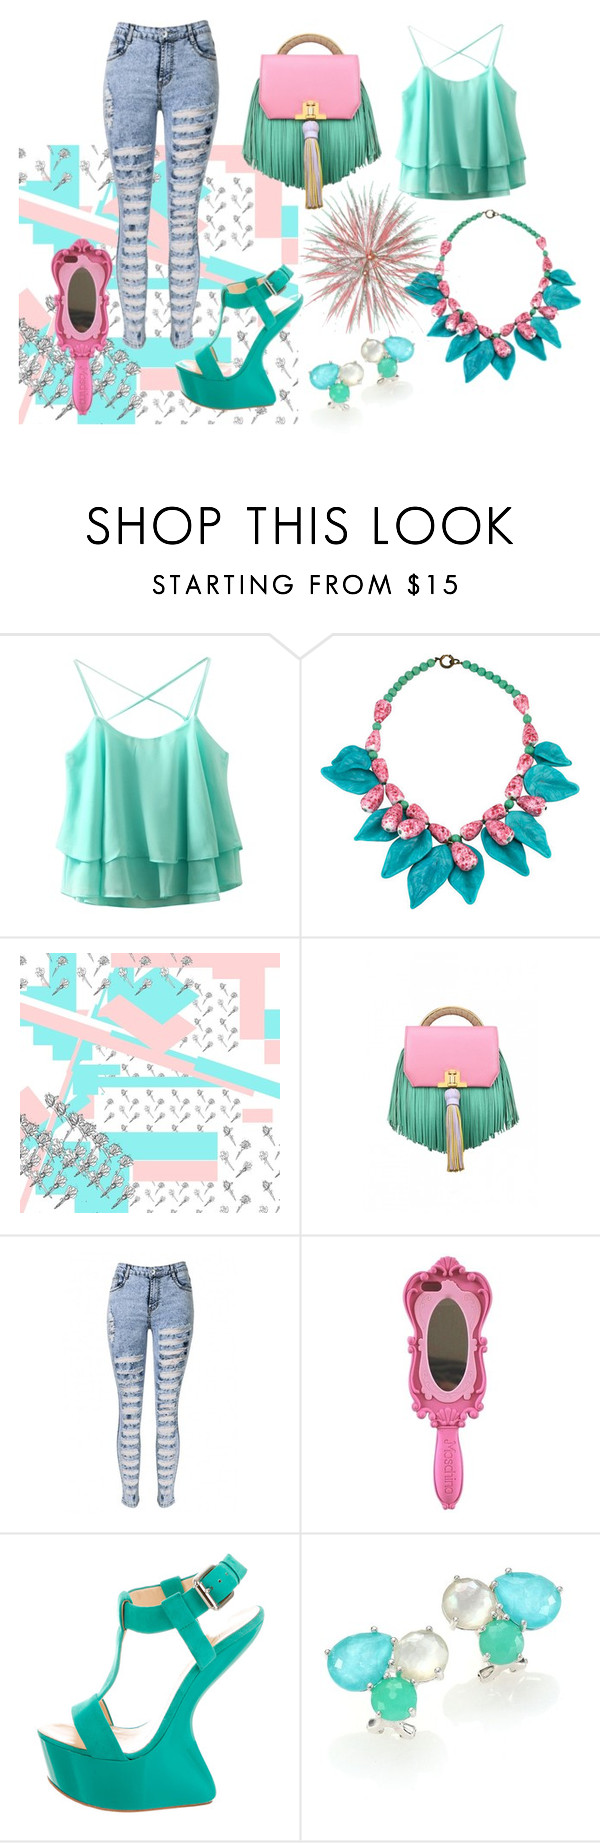 """""""Sweat momments"""" by kristy-gk on Polyvore featuring The Volon, Moschino, Giuseppe Zanotti and Ippolita"""